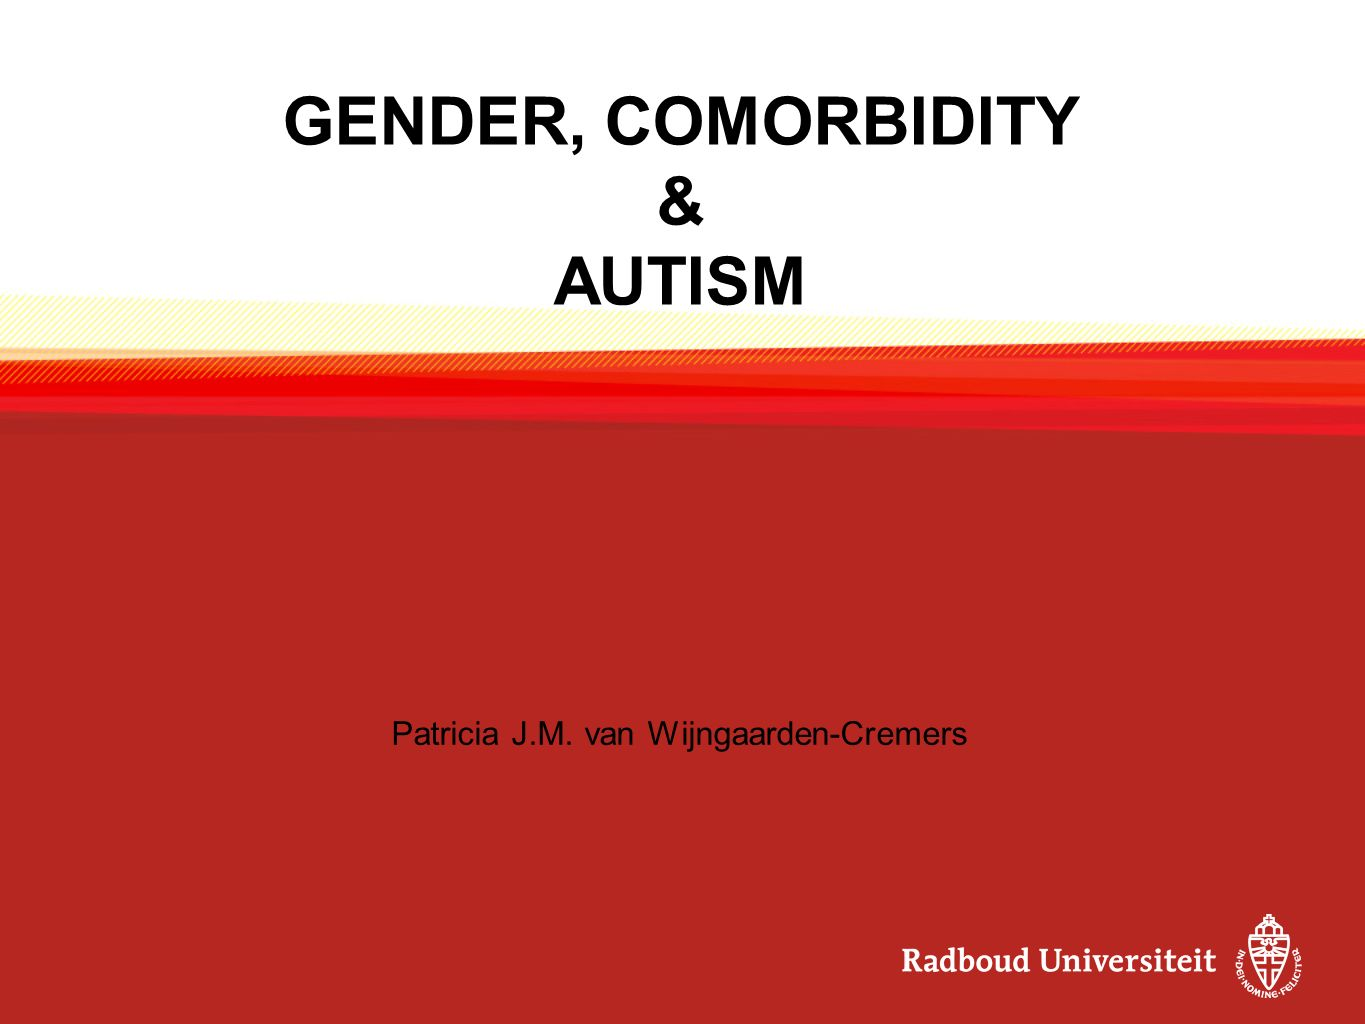 GENDER, COMORBIDITY & AUTISM